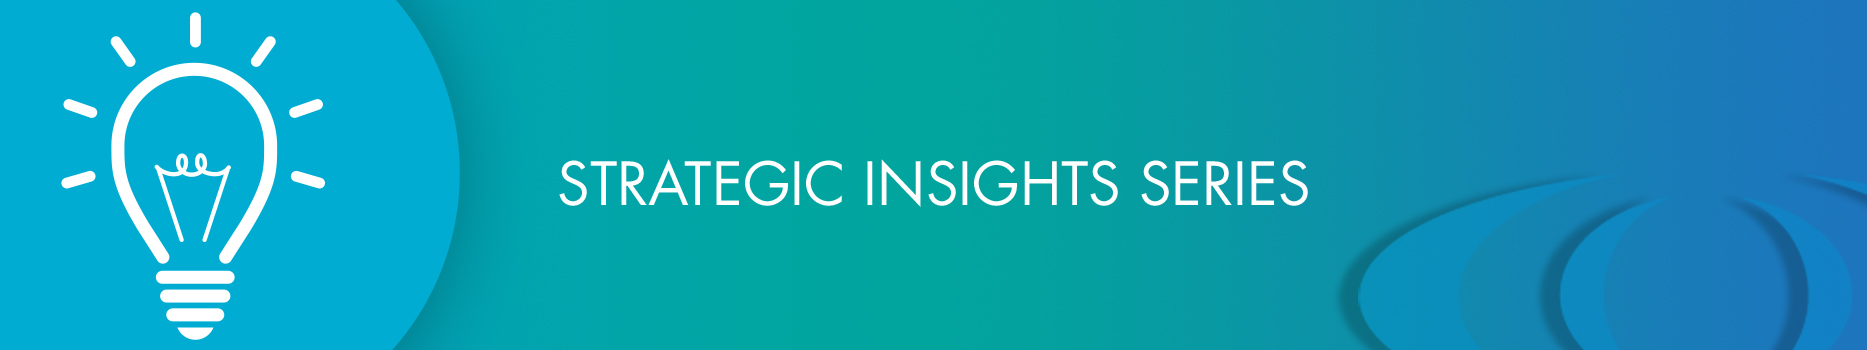 Strategic Insights Series Banner